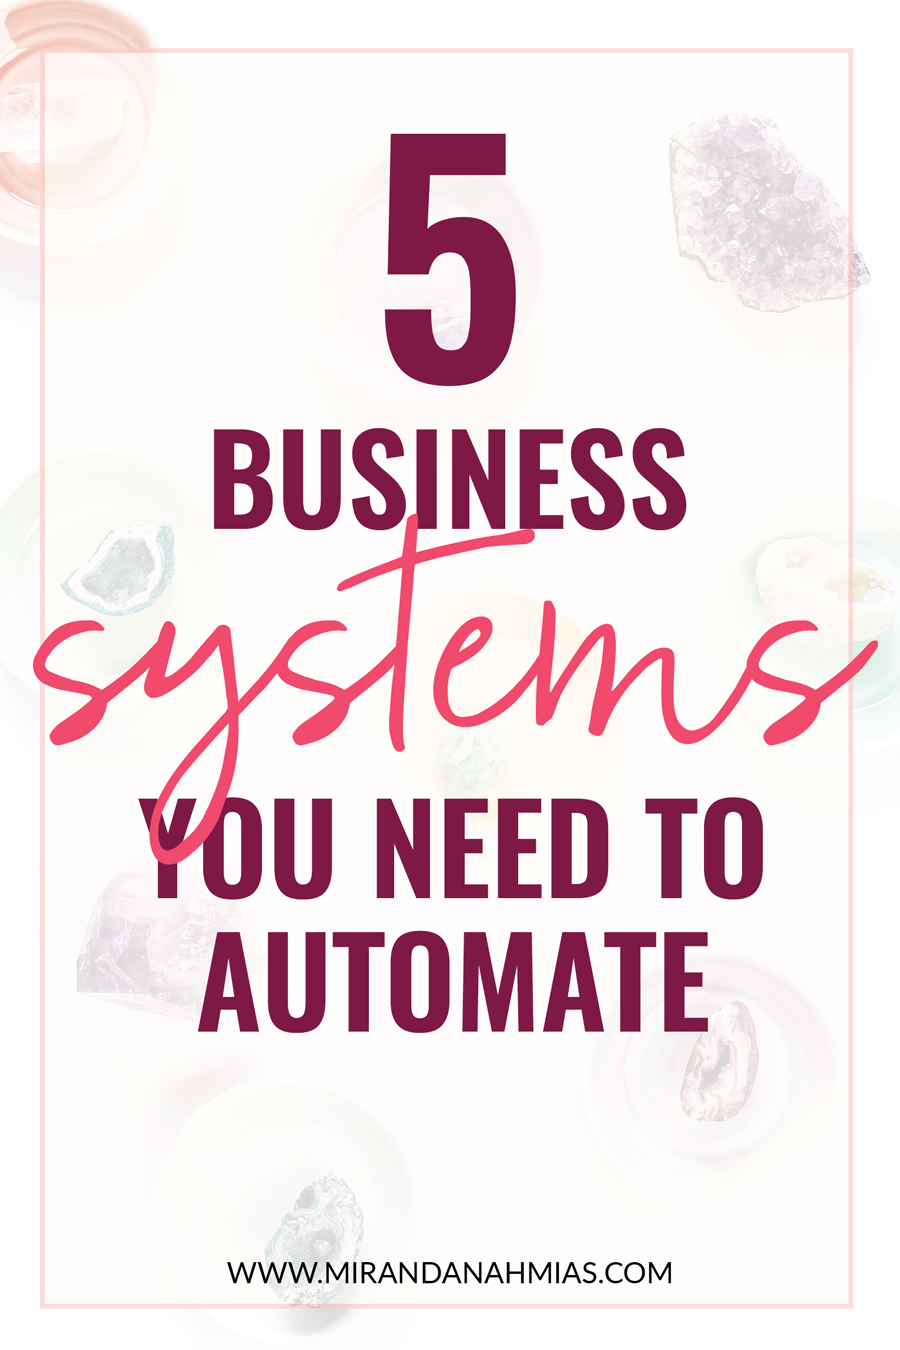 5 Business Systems You NEED to Be Automating! | Miranda Nahmias & Co. Systematic Marketing for Female Service Providers